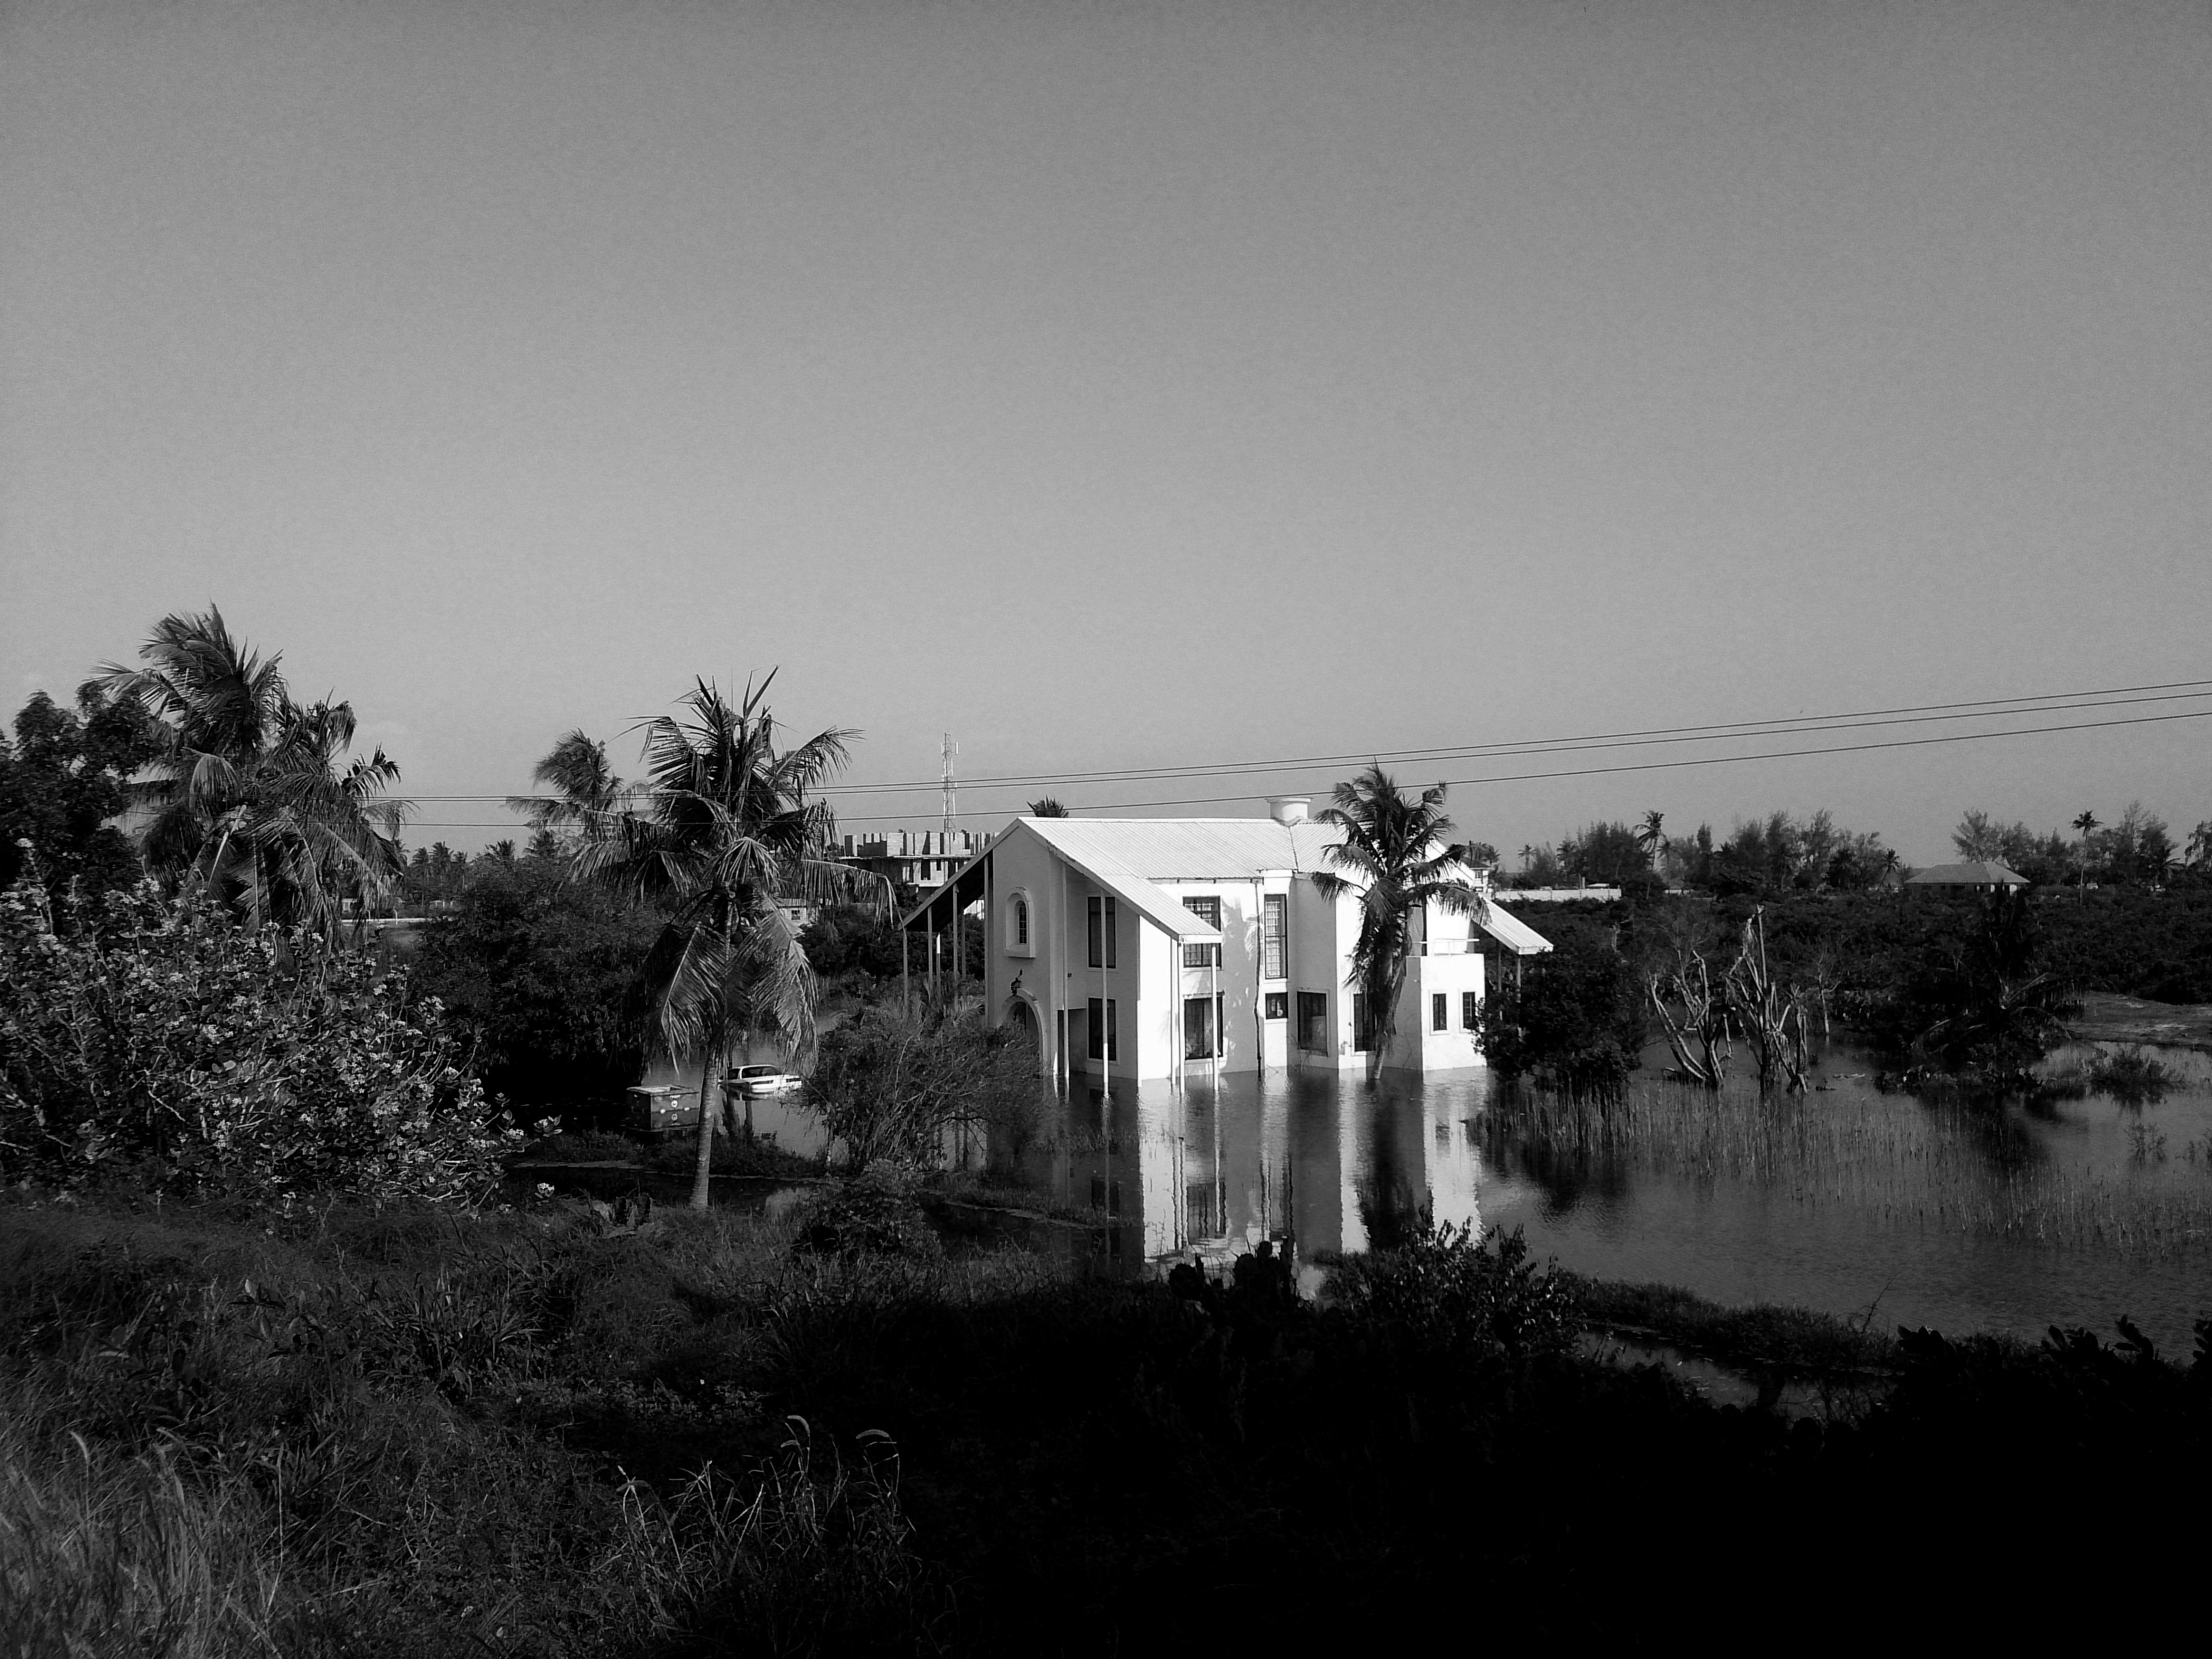 House in the outskirts of Dar es Salaam